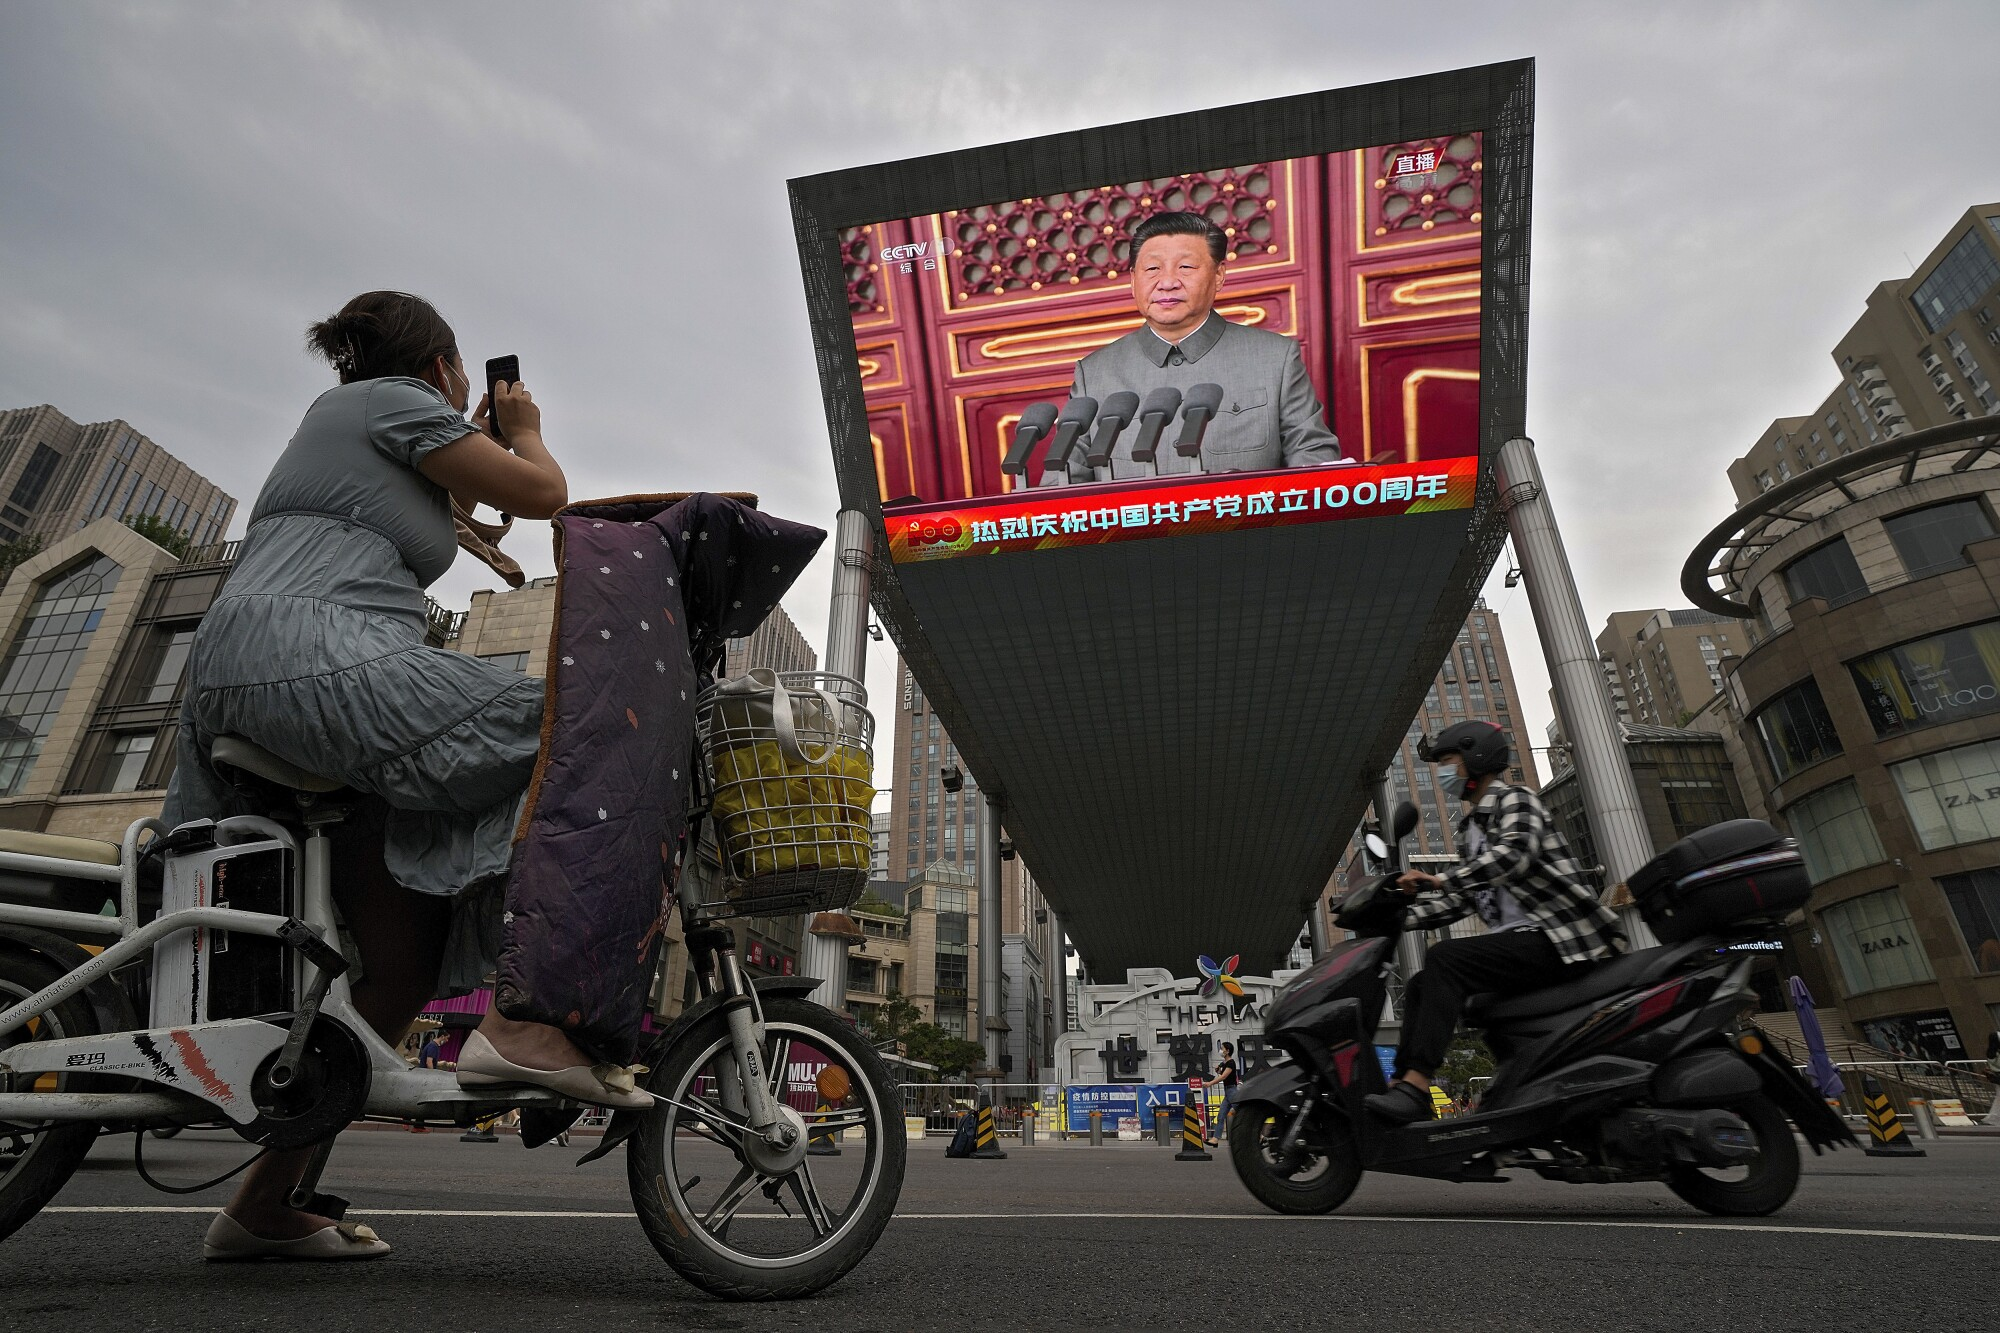 A woman on her electric-powered scooter films a large video screen showing Chinese President Xi Jinping.